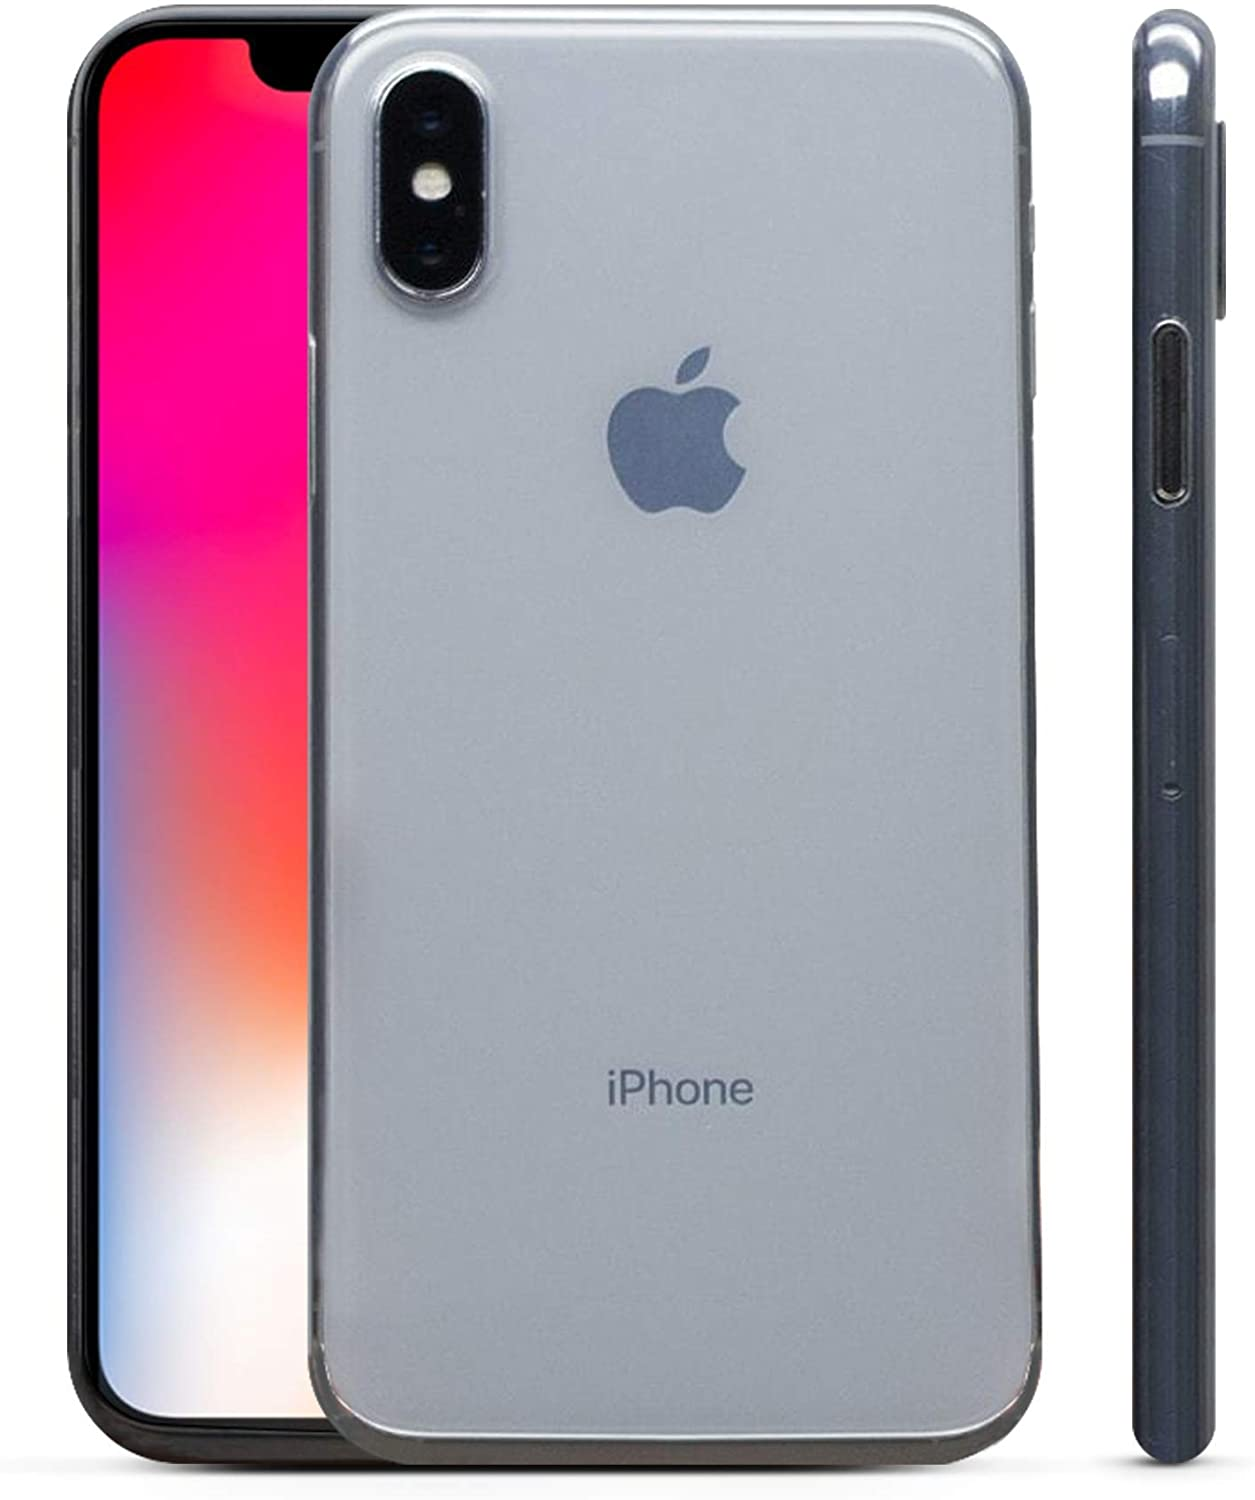 PEEL Ultra Thin iPhone X Case, Super Clear - Minimalist Design | Branding Free | Protects and Showcases Your Apple iPhone X